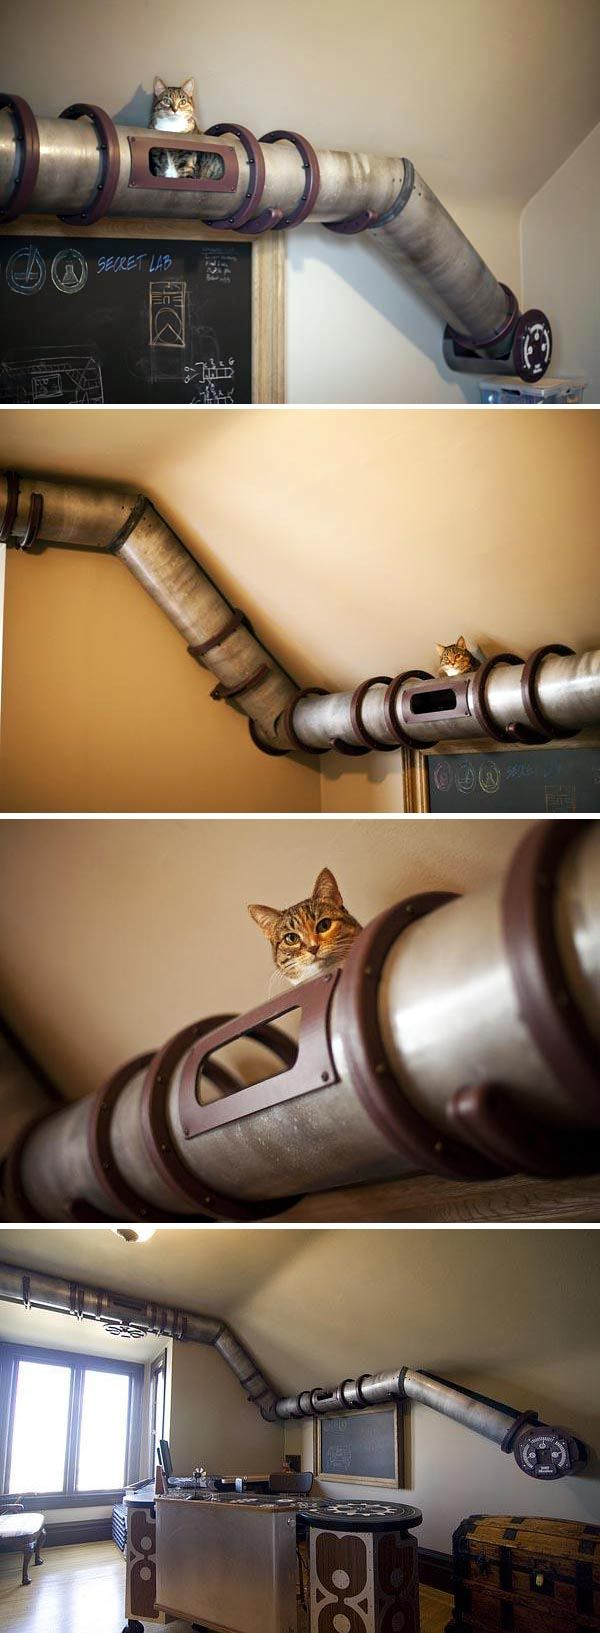 Cats love being up high, climbing, hiding, roaming, looking down ... this tubular design meets all those needs but, in my eyes, is kind of unsightly.  I'd prefer a prettier option.